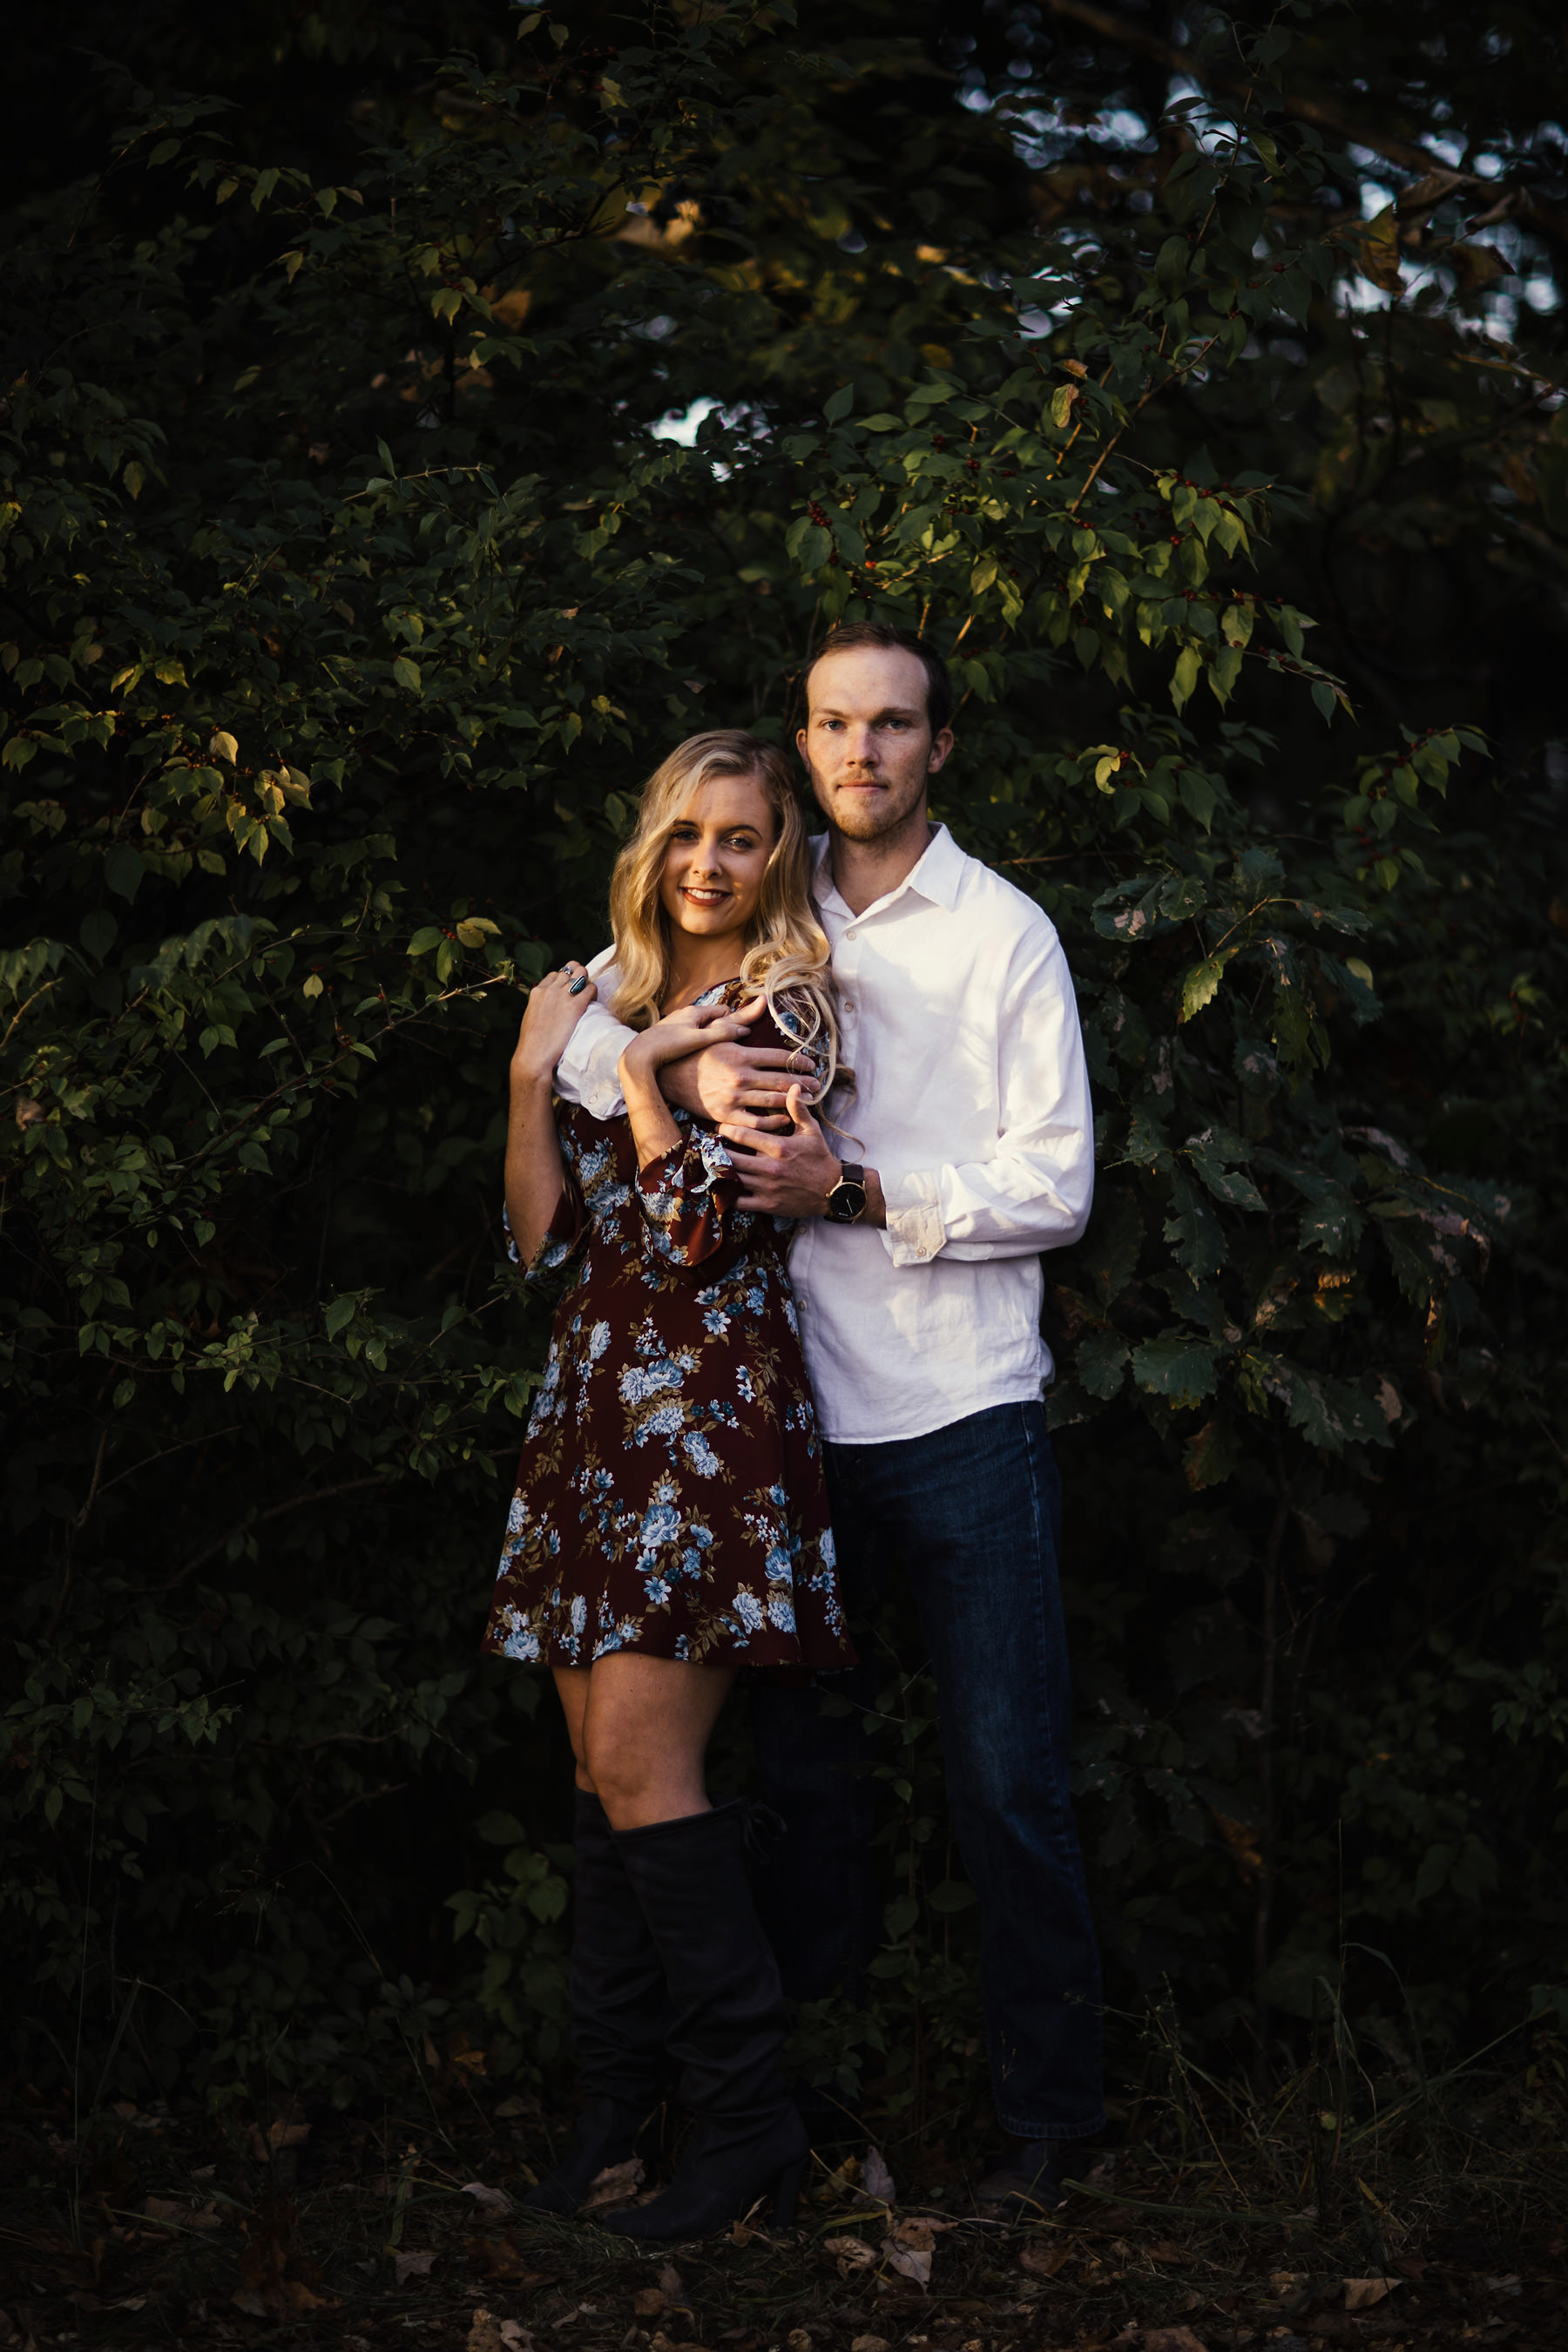 Castlewood State Park_Engagement Photos_Kindling Wedding Photography Blog06.JPG